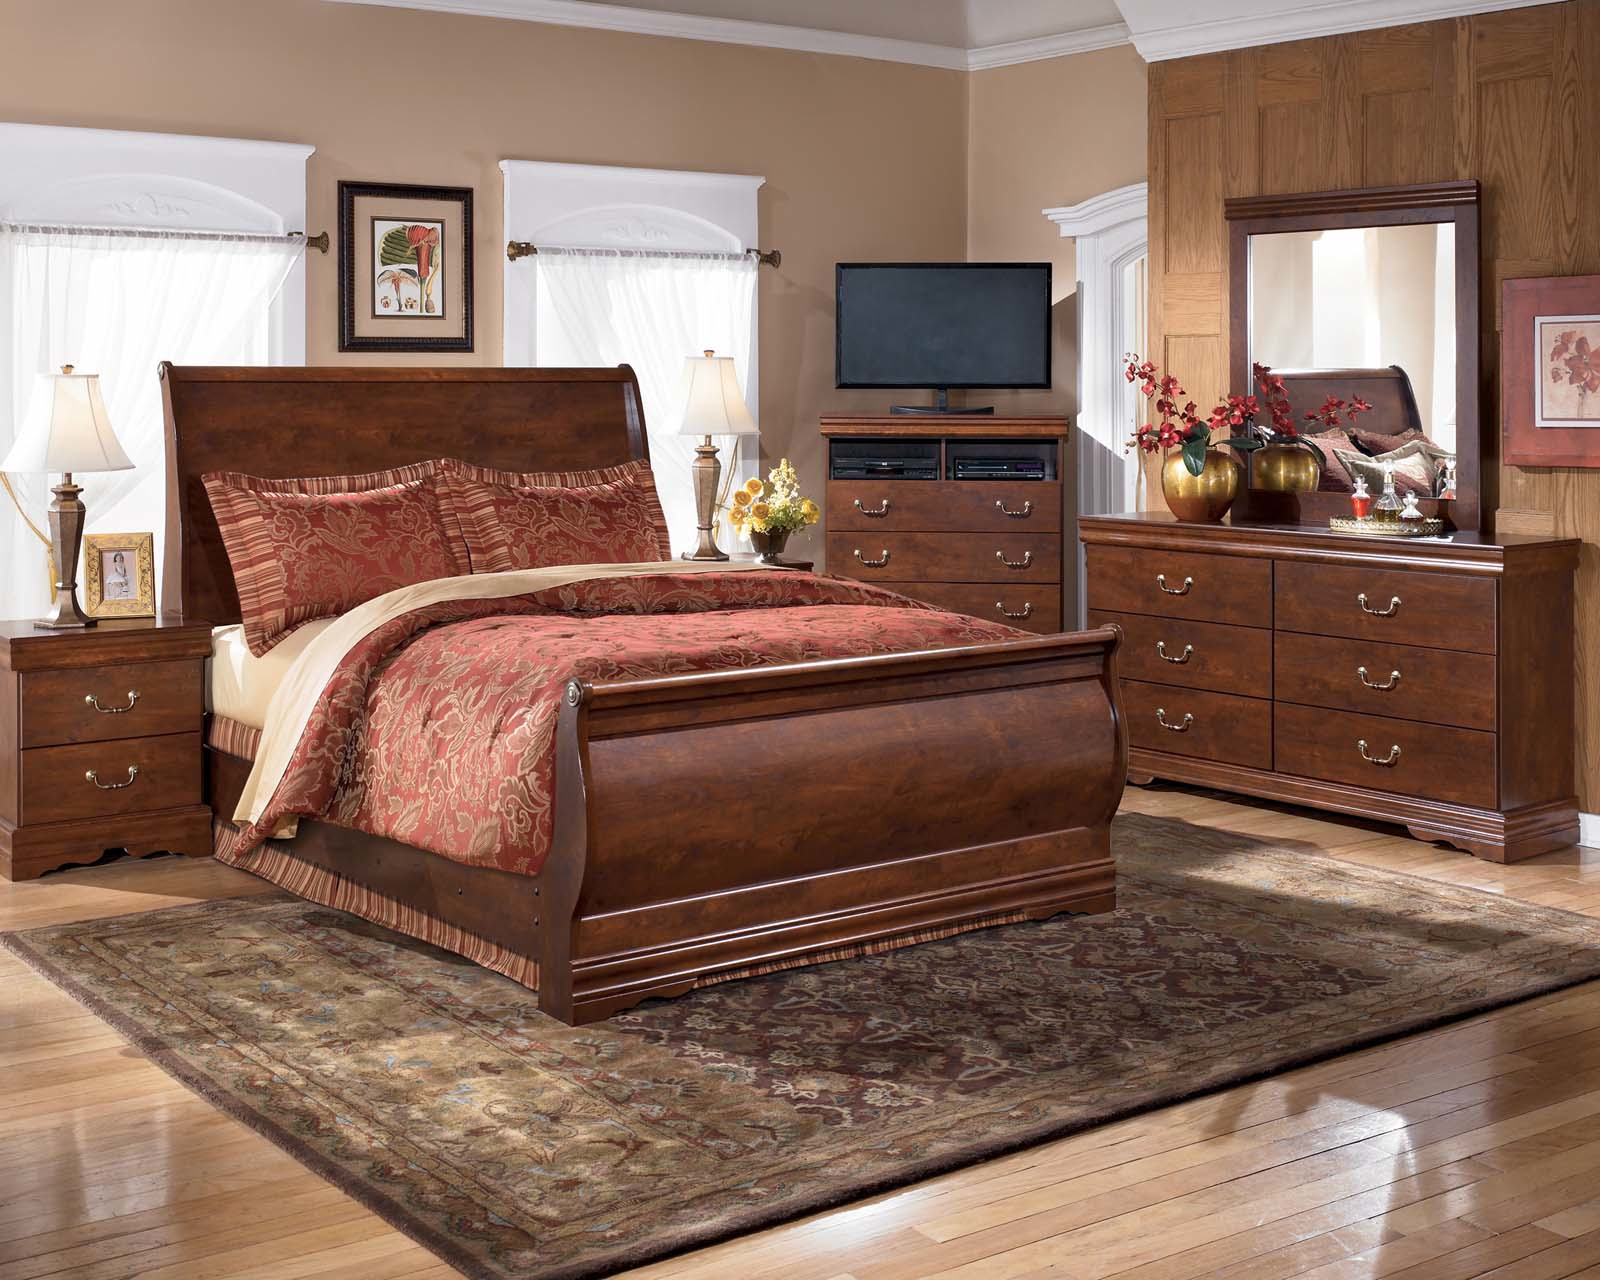 Pottery Barn Sleigh Bed | Double Bed Headboard Designs | Headboard and Frame Set